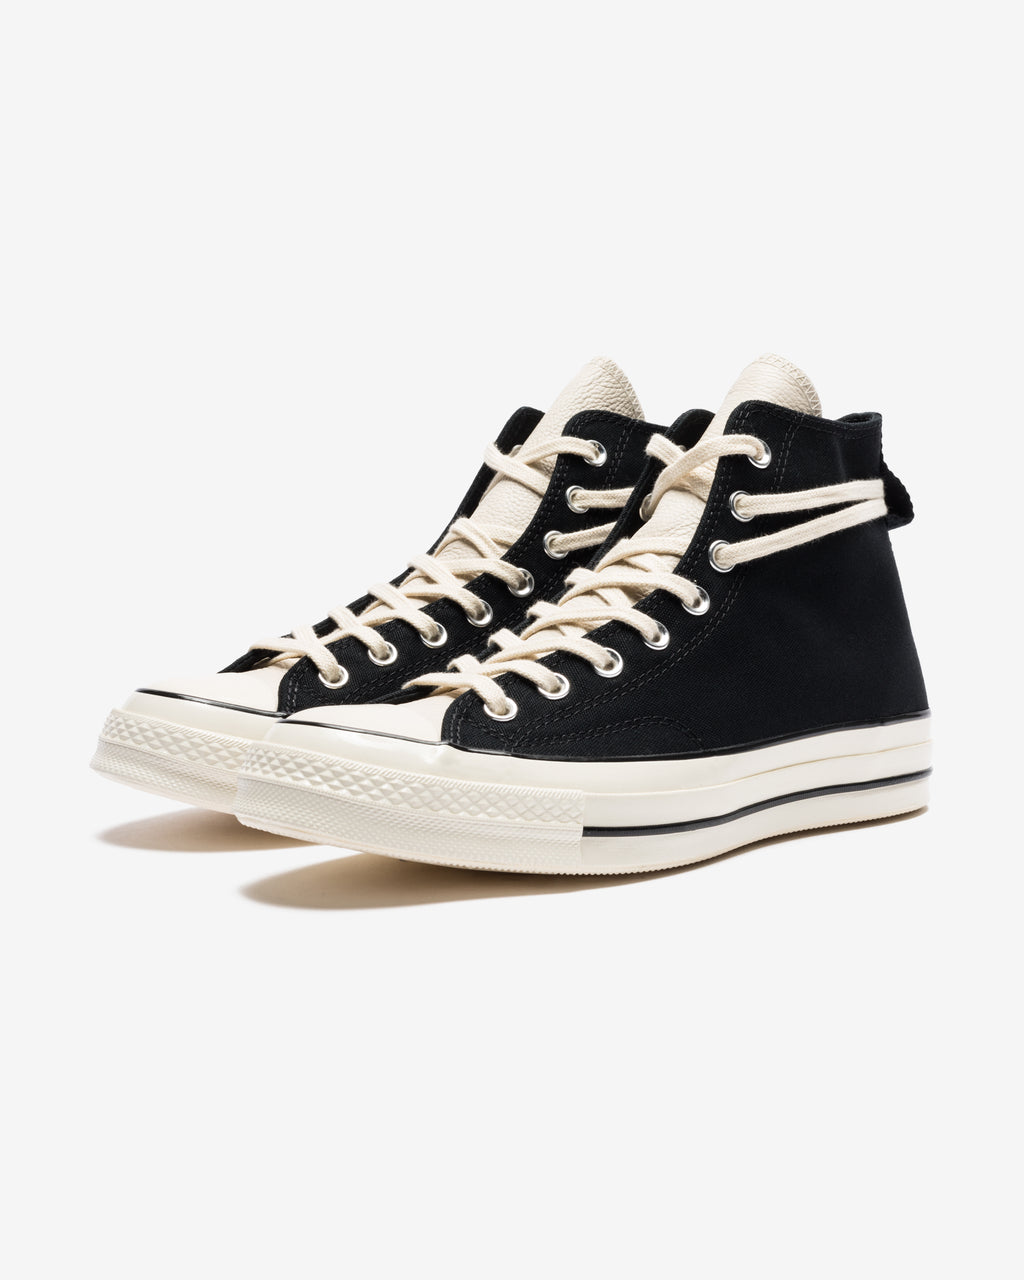 CONVERSE X FEAR OF GOD CHUCK 70 HI - BLACK/ EGRET/ NATURAL